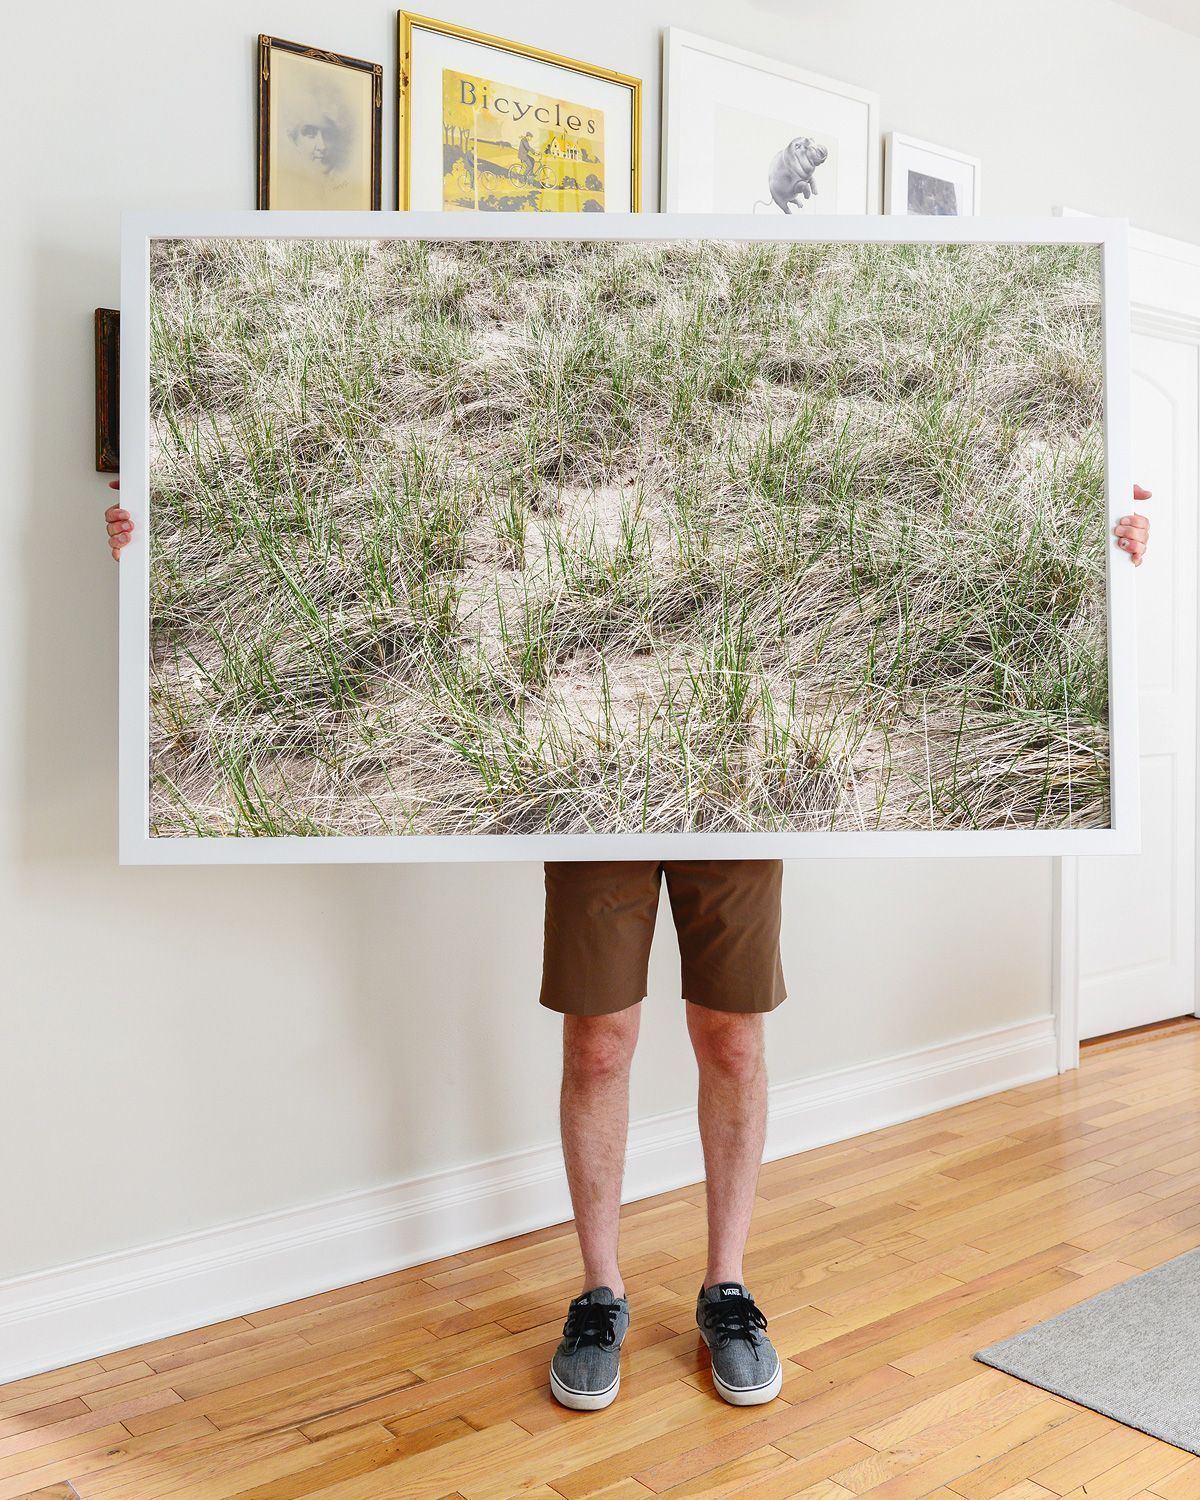 How To Diy An Extra Large Frame And Keep It Lightweight Via Yellow Brick Home Diy Giant Fram Large Framed Art Large Scale Wall Art Large Picture Frames